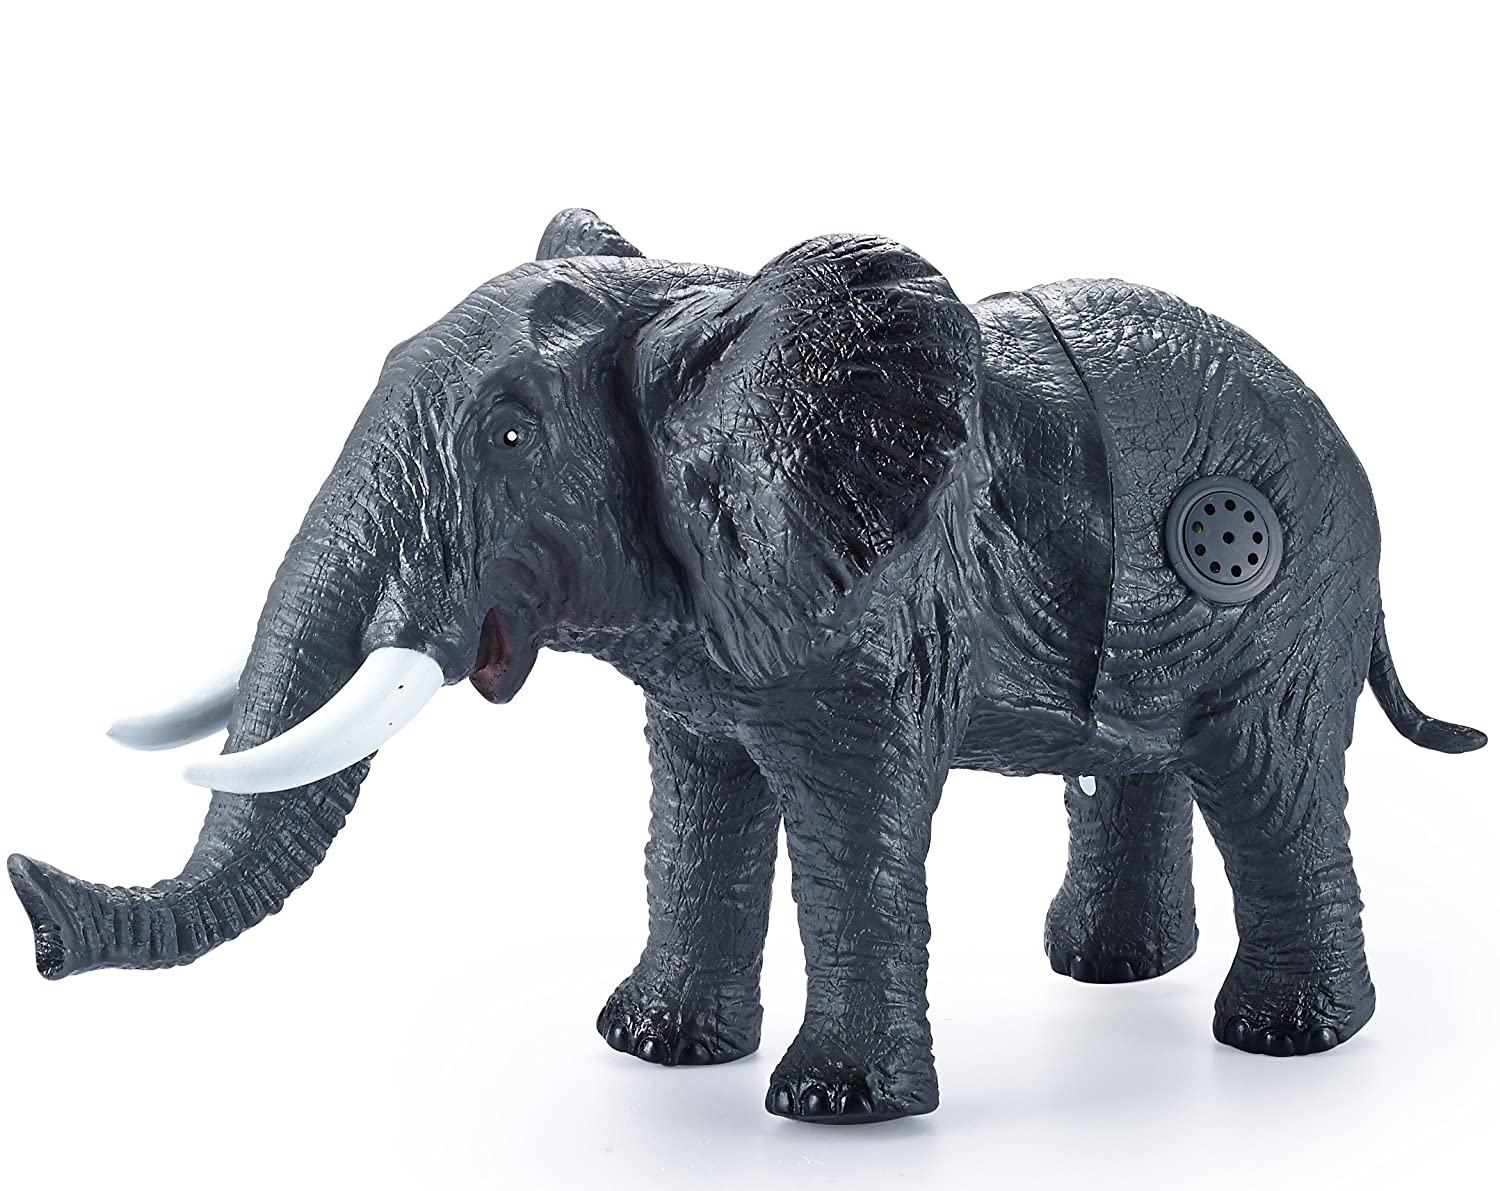 JaxoJoy 12 inch Giant Elephant  Ultra Realistic Detailed Design  Premium Squeezable Child Safe Plastic  Ideal Party Gift  For Children Aged 3 and Up Jaxojoy